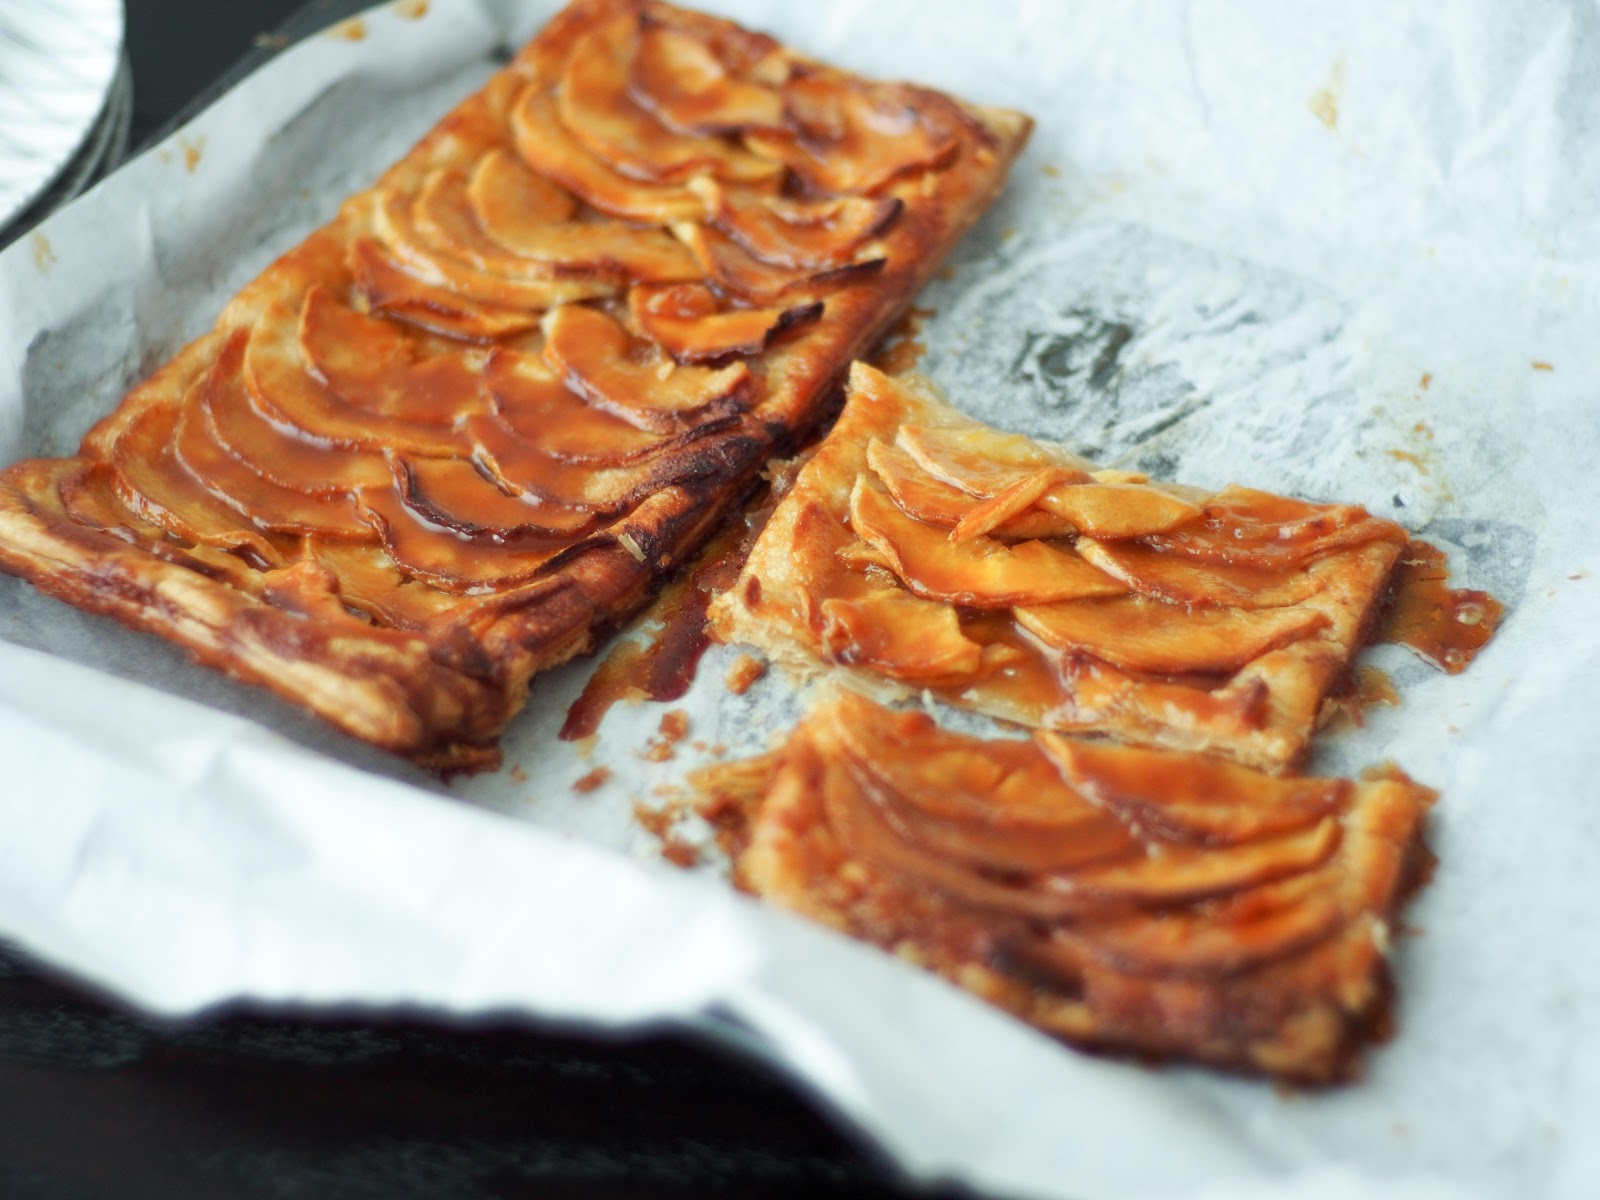 Today, she called me asking for the apple tart recipe because she's ...